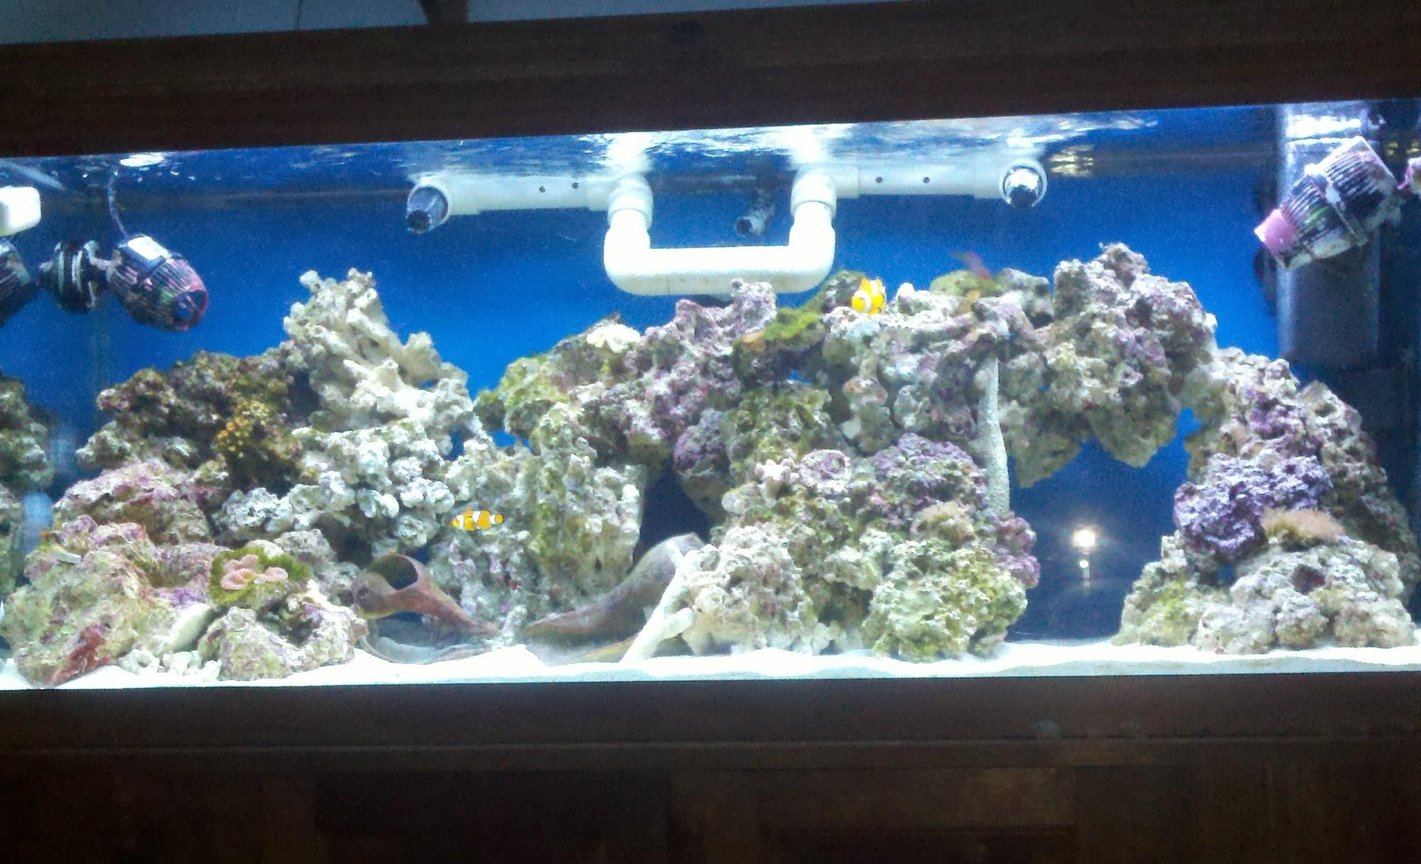 75 gallons reef tank (mostly live coral and fish) - sorta crappy fulltank shot using cellphone